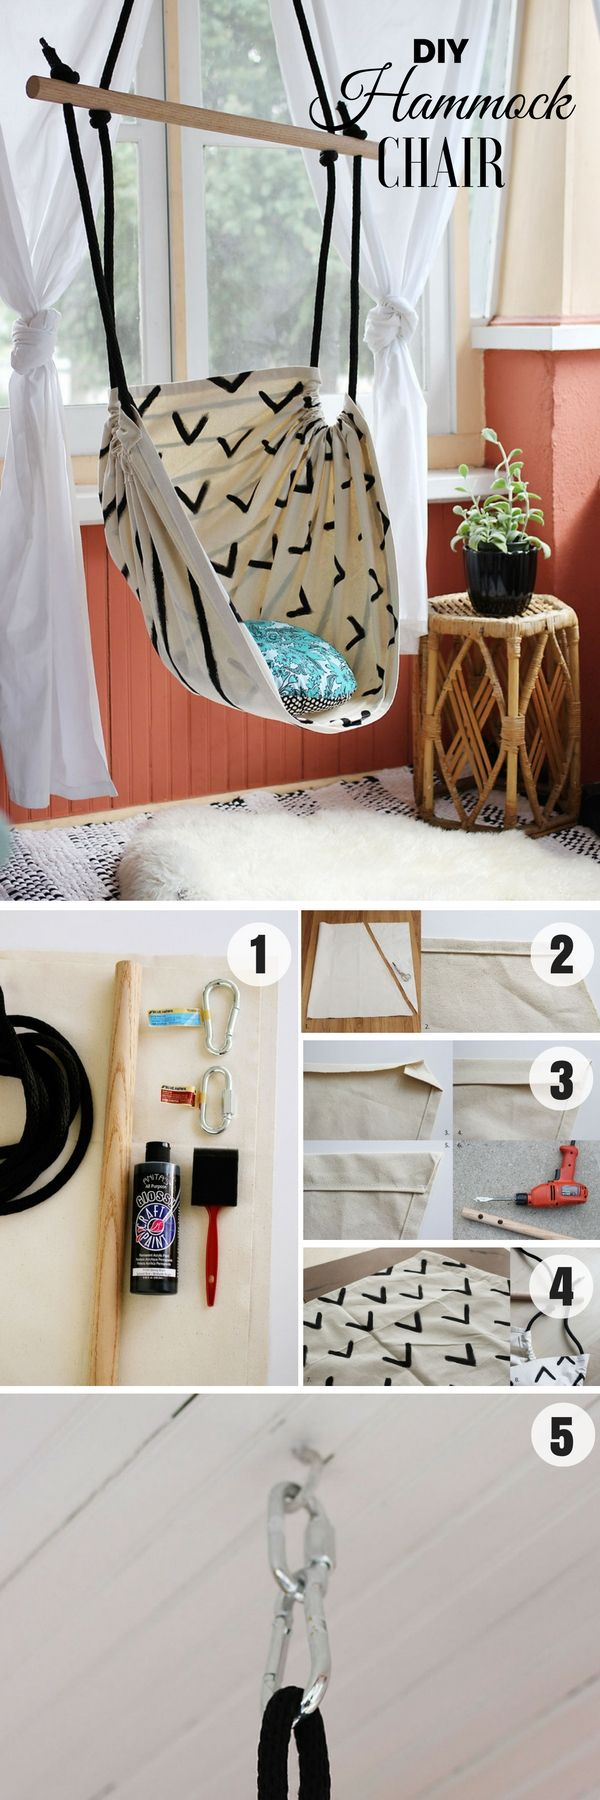 Bedroom Decor Diy Ideas best 25+ diy room ideas ideas only on pinterest | diy room decor